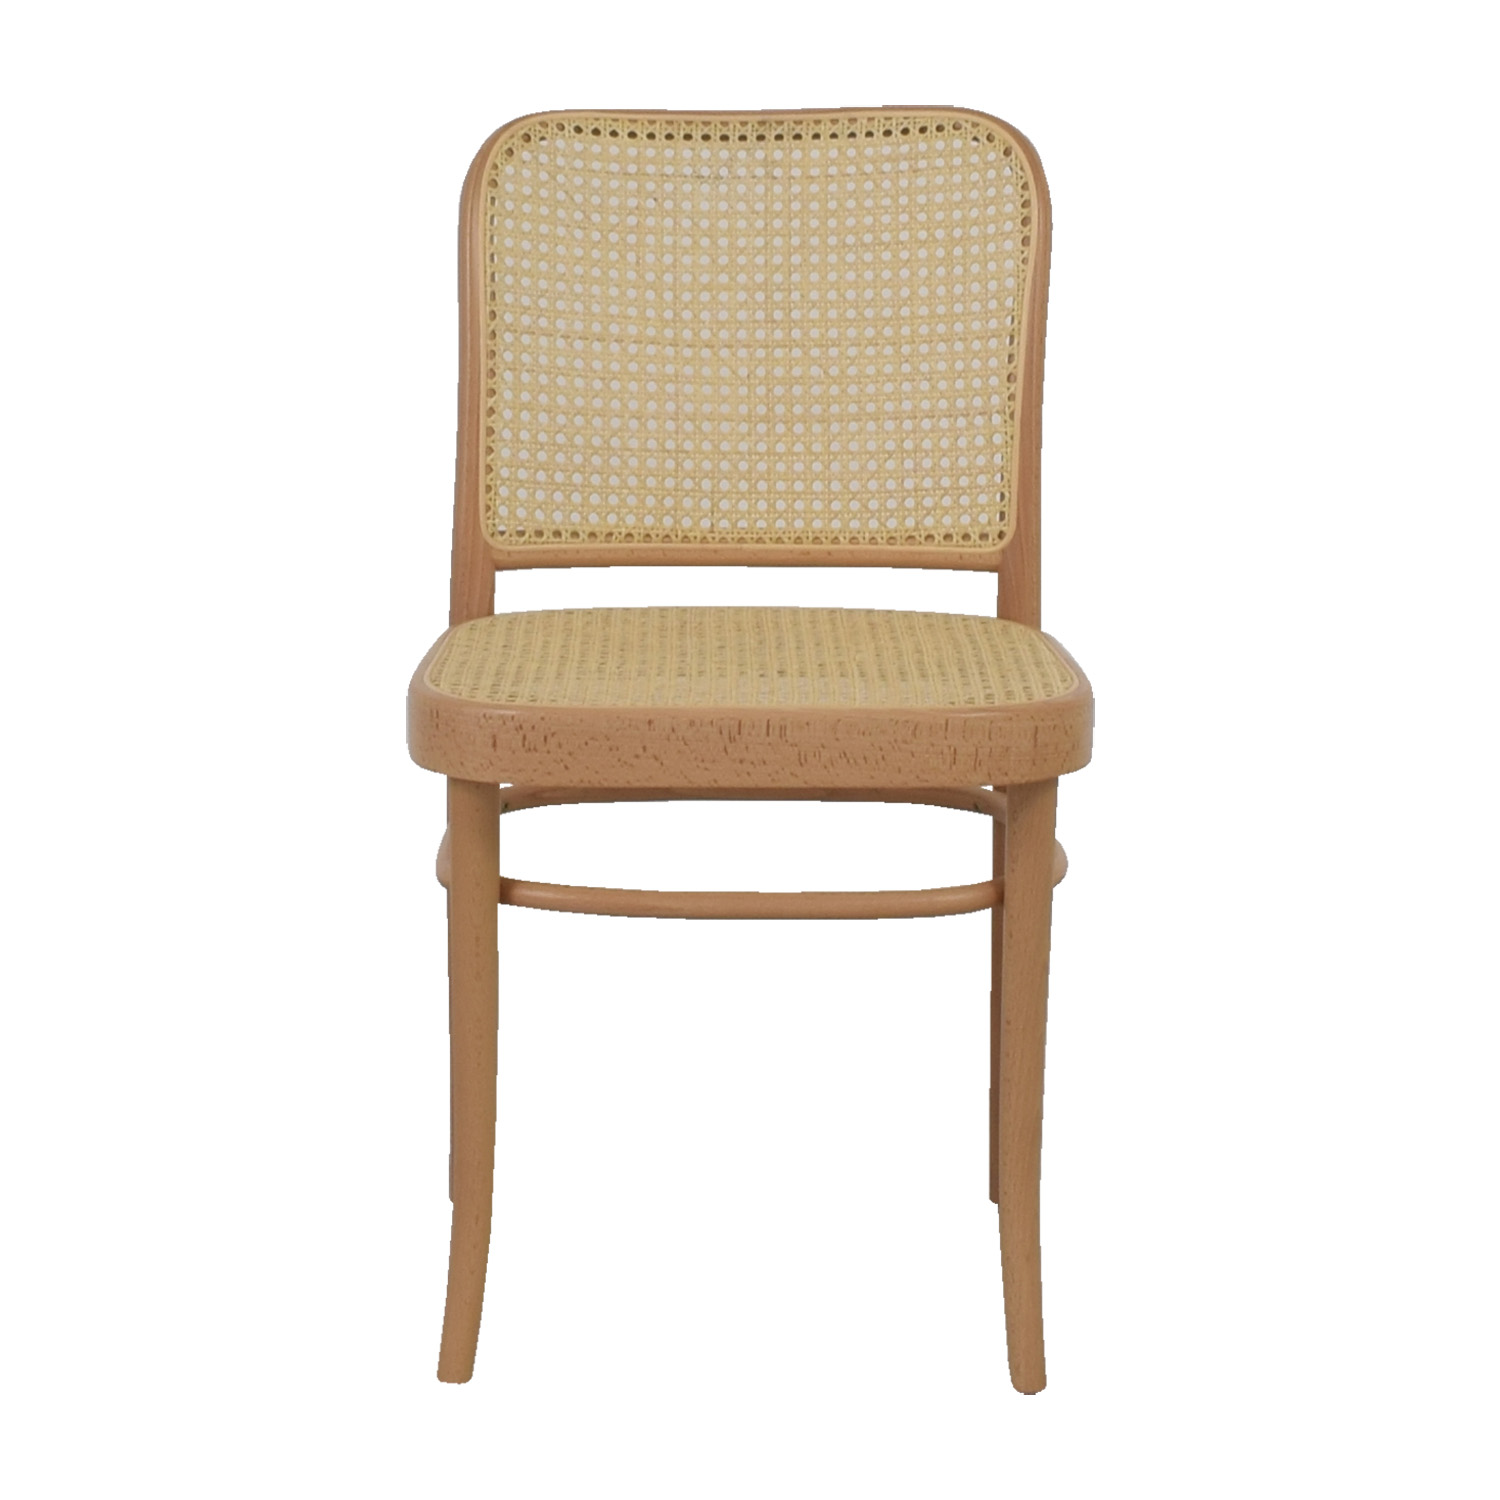 Design Within Reach Design Within Reach Hoffman Natural Side Chair Accent Chairs  sc 1 st  Kaiyo & 79% OFF - Design Within Reach Design Within Reach Hoffman Natural ...